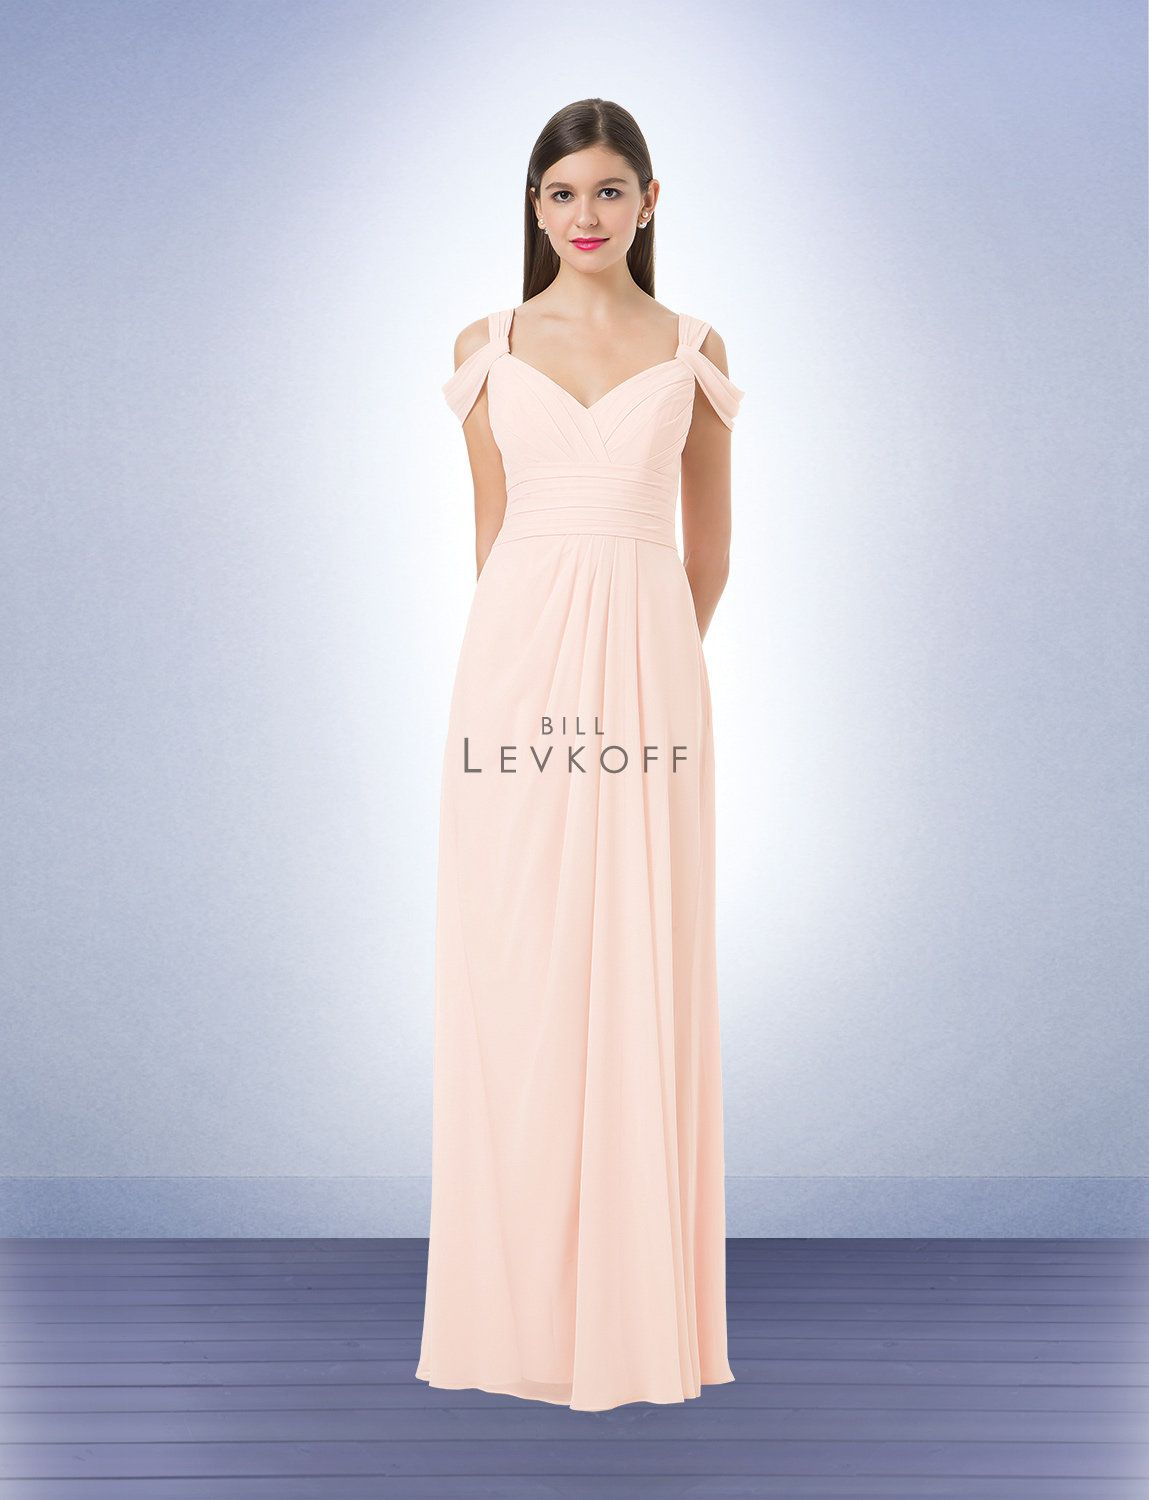 To acquire Bridesmaid Affordable dresses nyc pictures picture trends